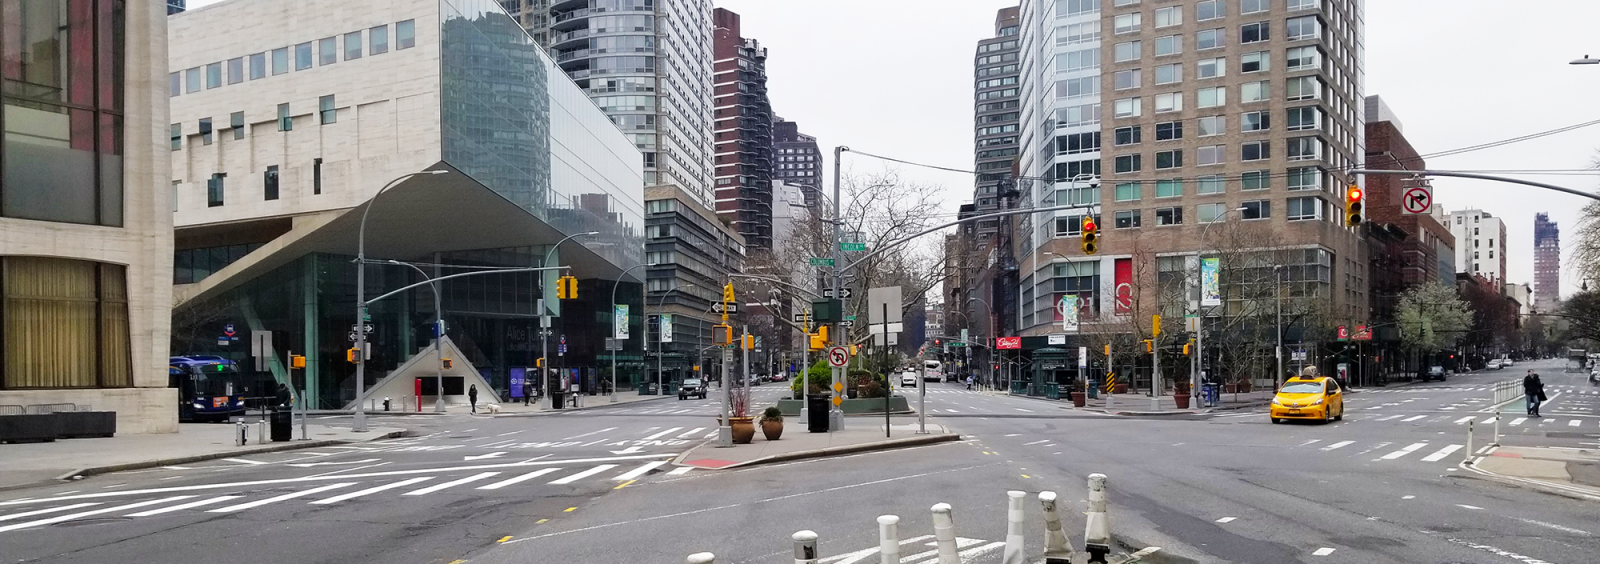 the nearly empty intersection of Broadway, Columbus Ave, and 65th Street in March 2020